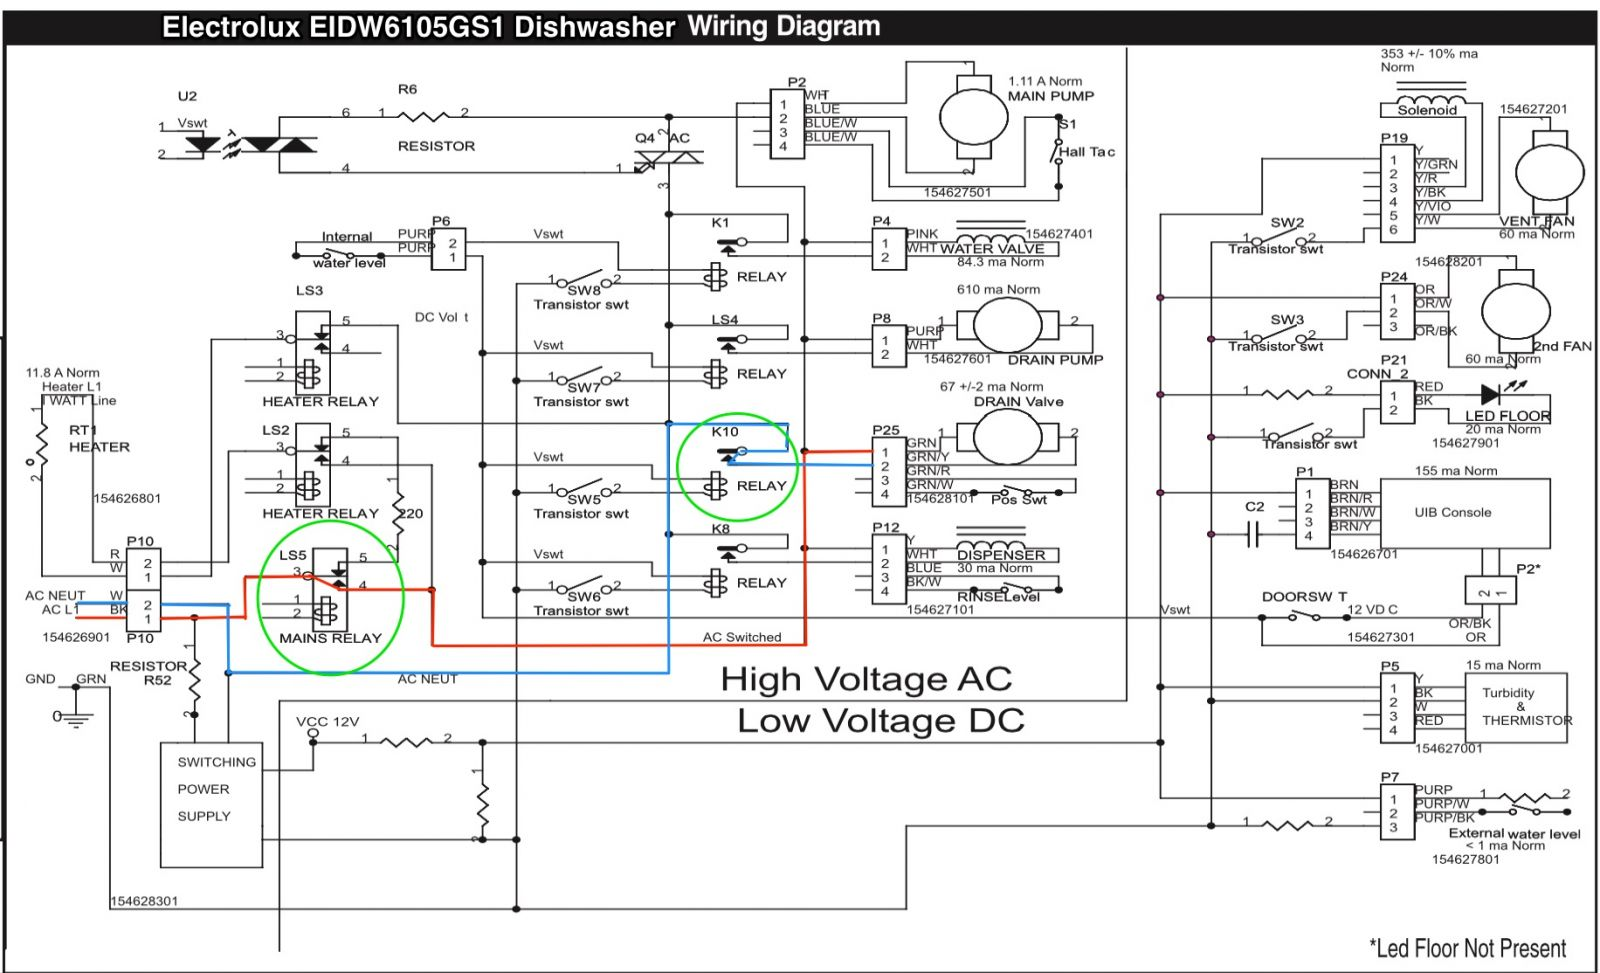 Electrolux EIDW6105GS1 Dishwasher Wiring Diagram - The ... on appliance service, microwave repair diagrams, waring parts list diagrams, crosley parts diagrams, amana appliance diagrams, power distribution diagrams, appliance parts, troubleshooting diagrams, appliance installation,